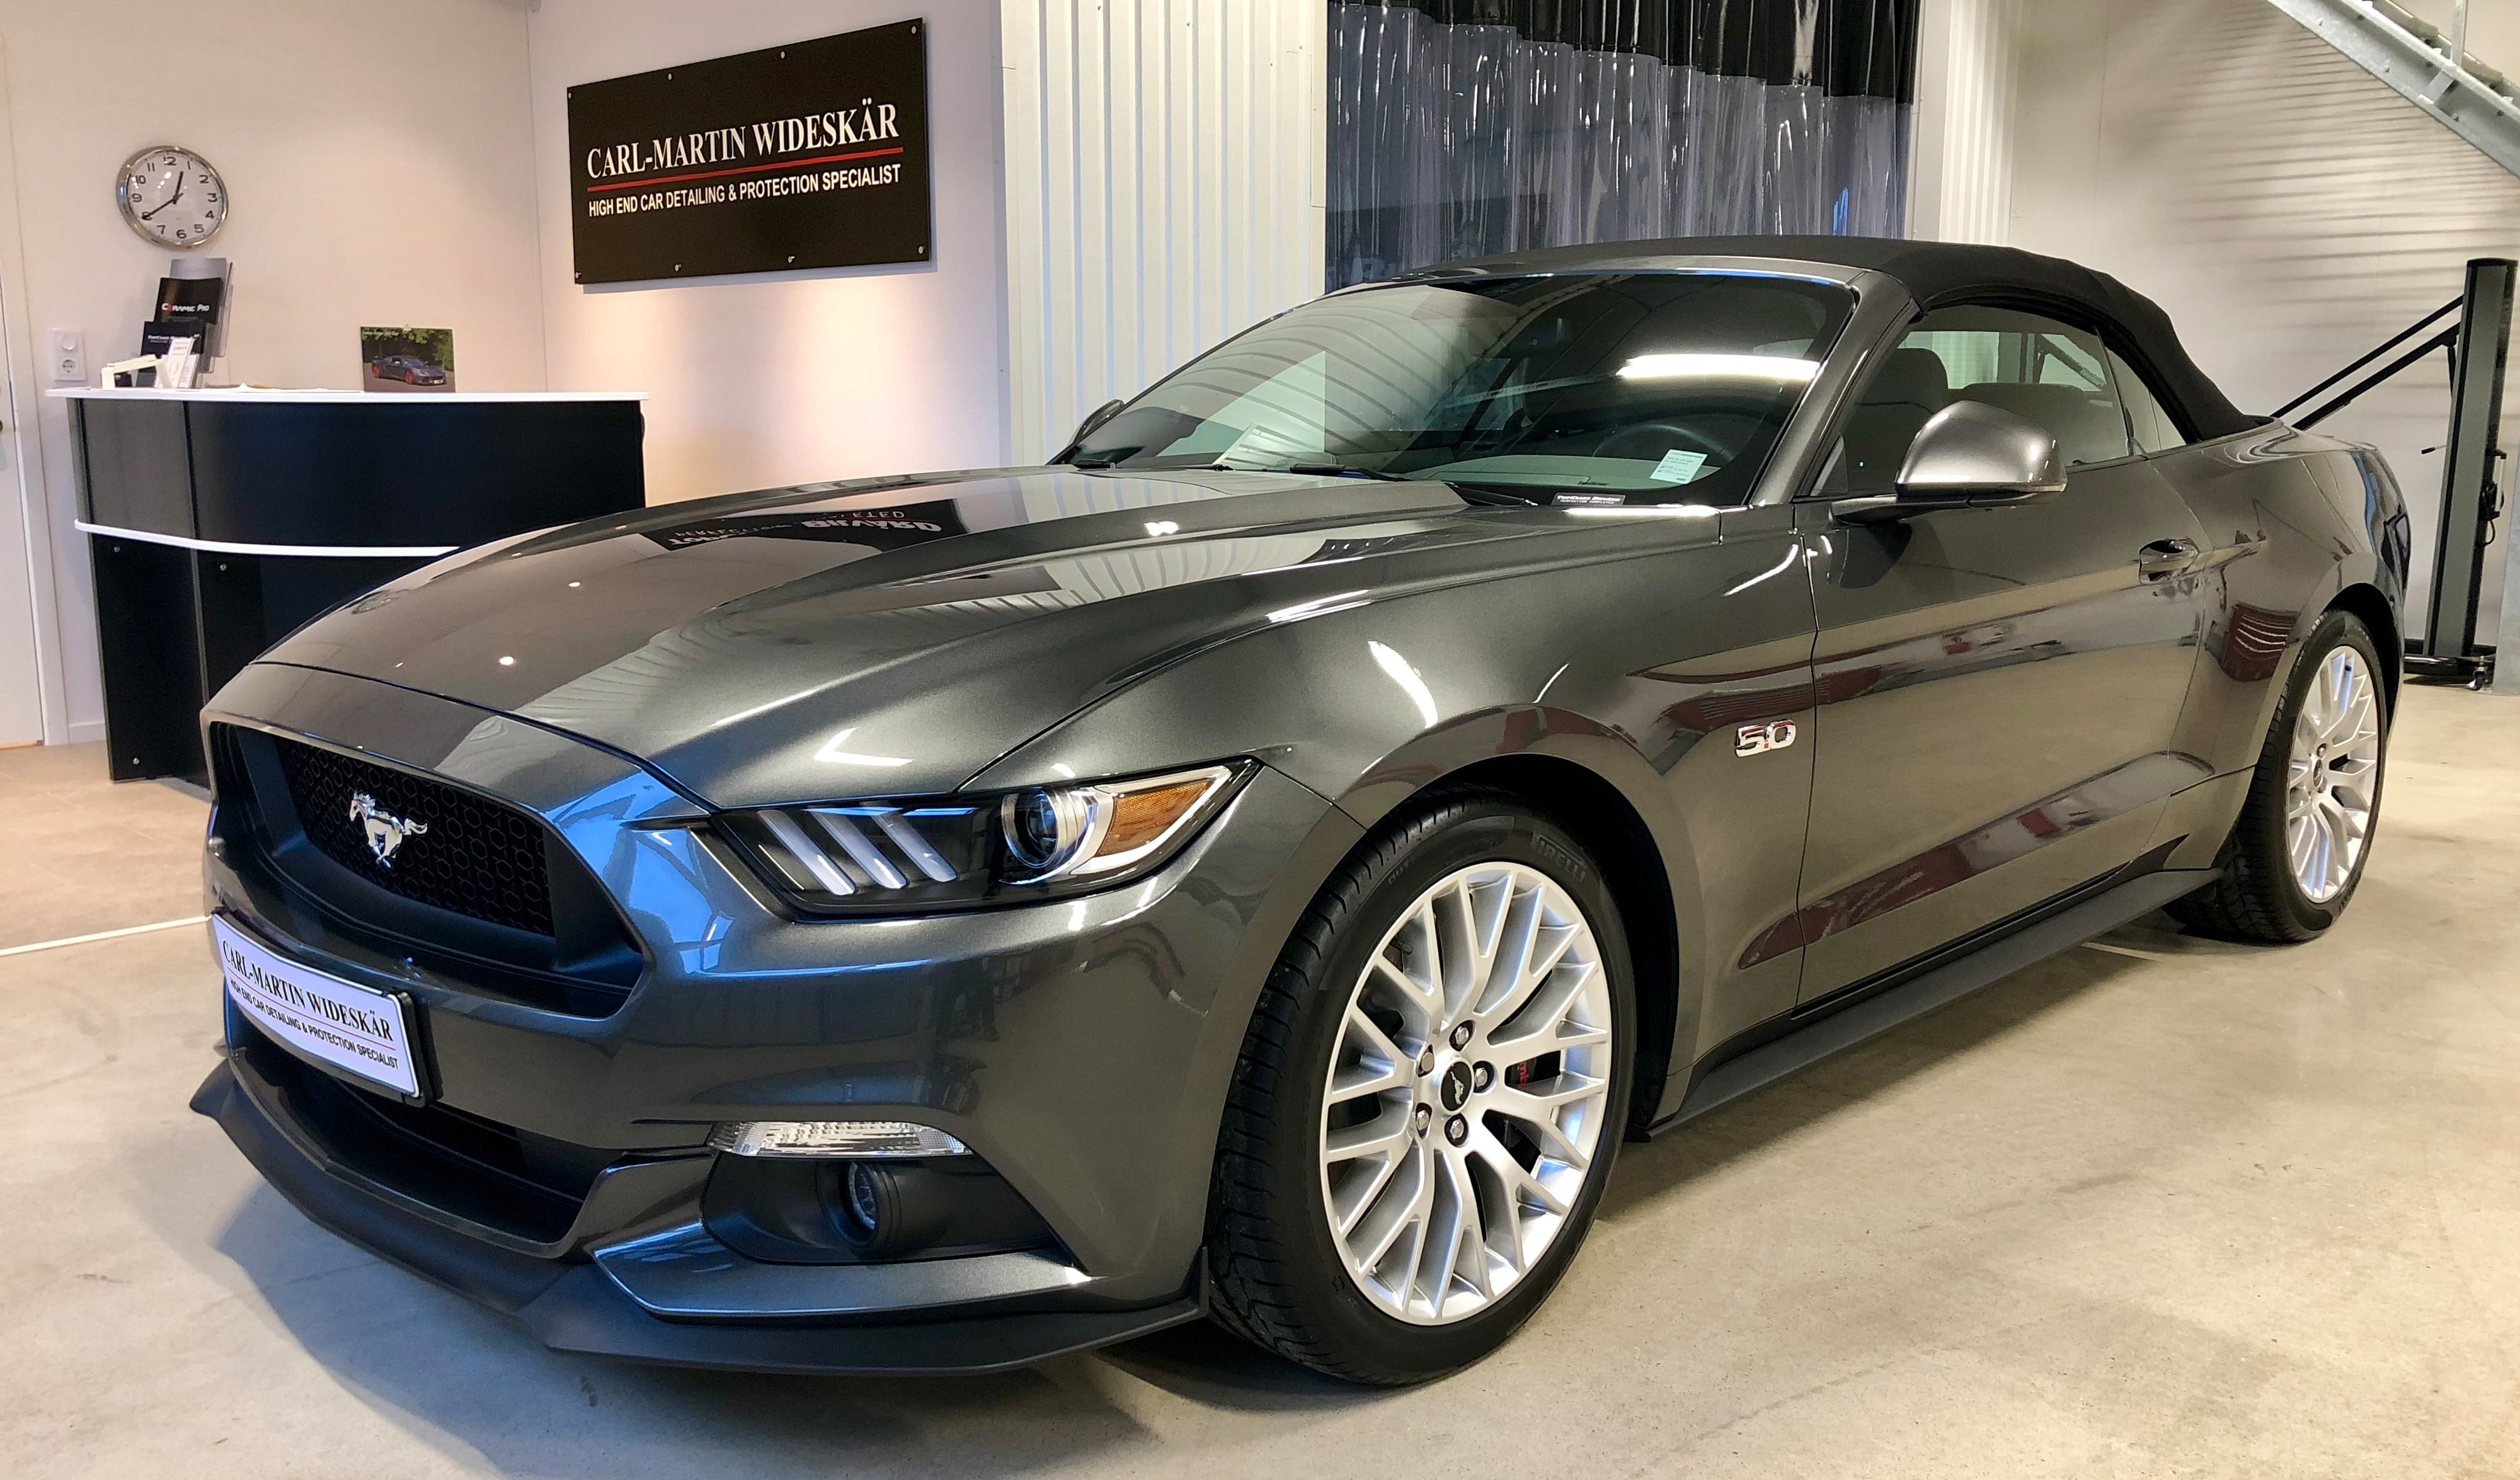 cmw_galleri_Ford_mustangGT-min